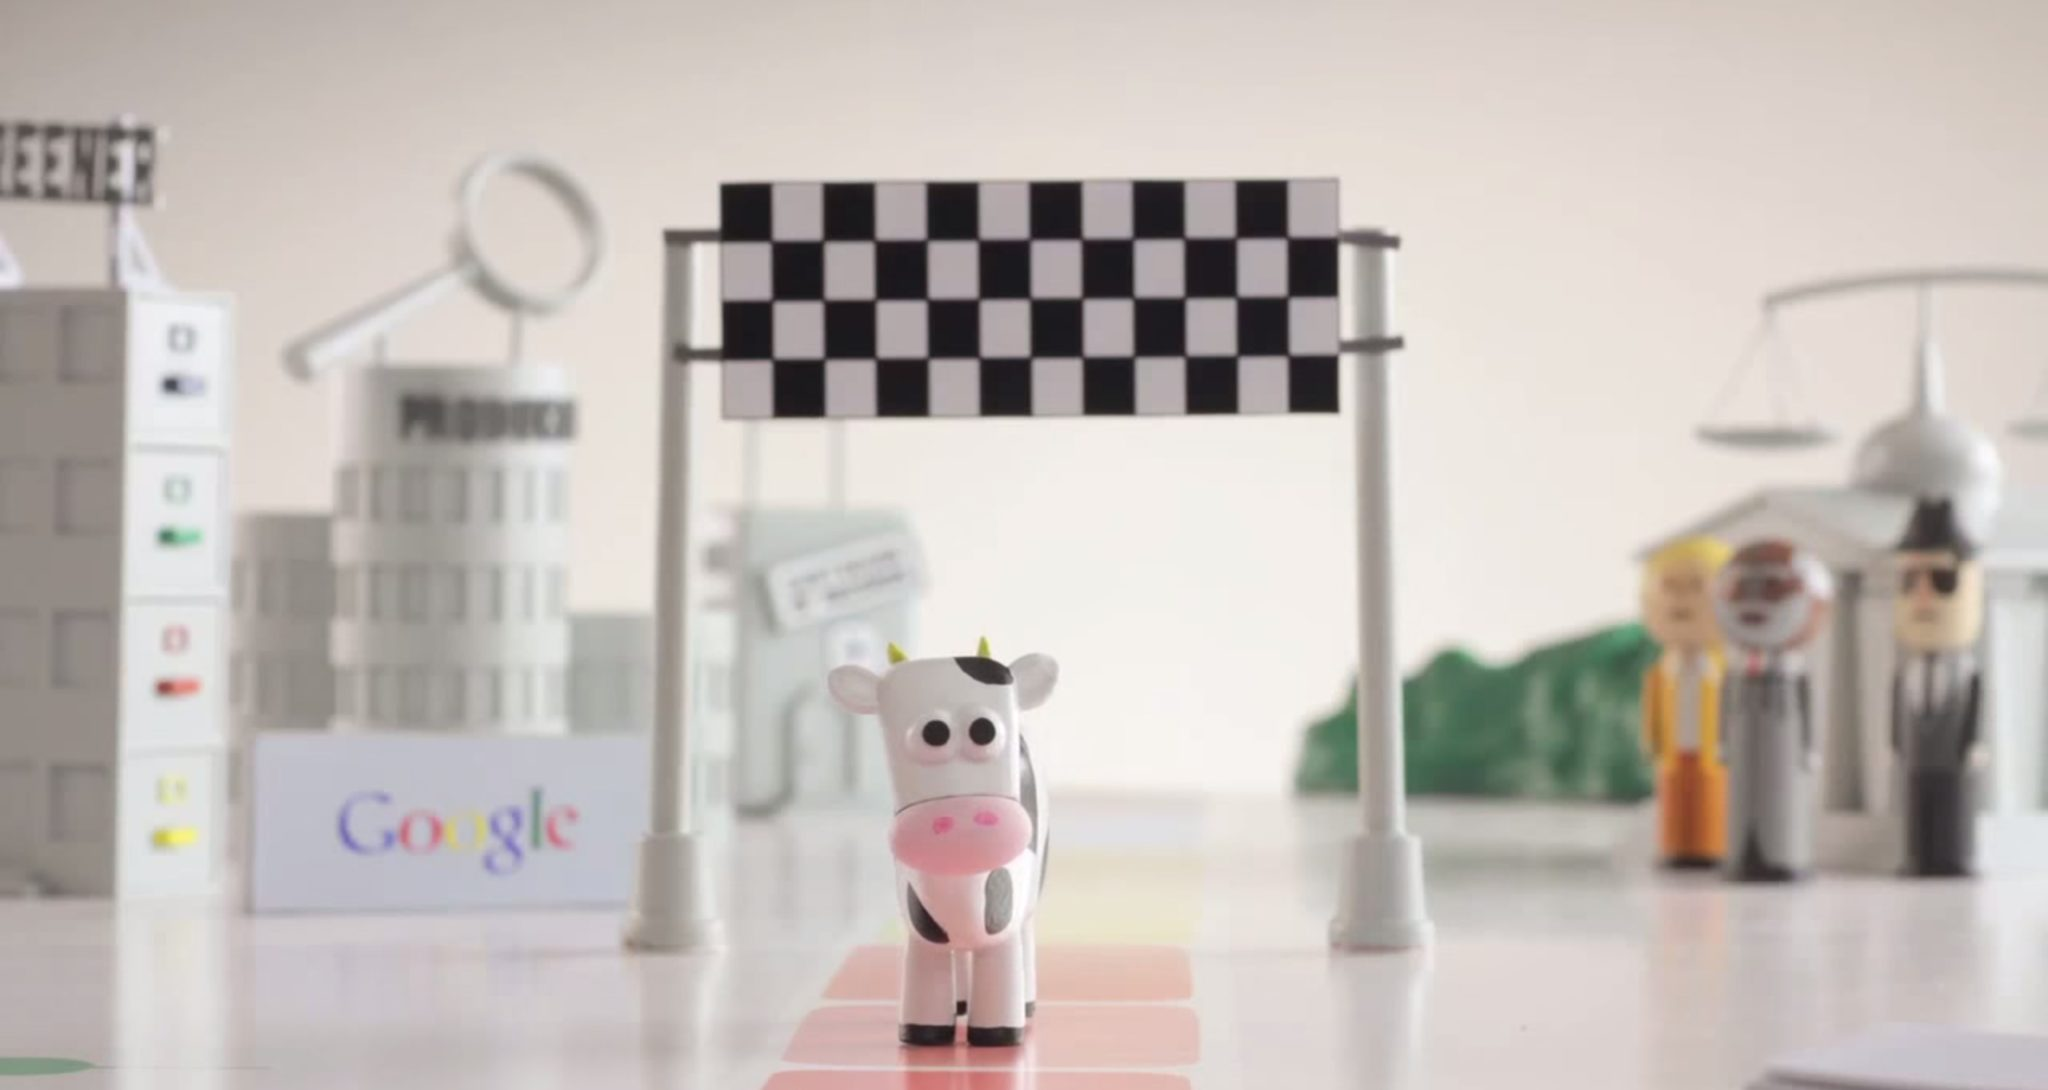 Google-WOW-Cow